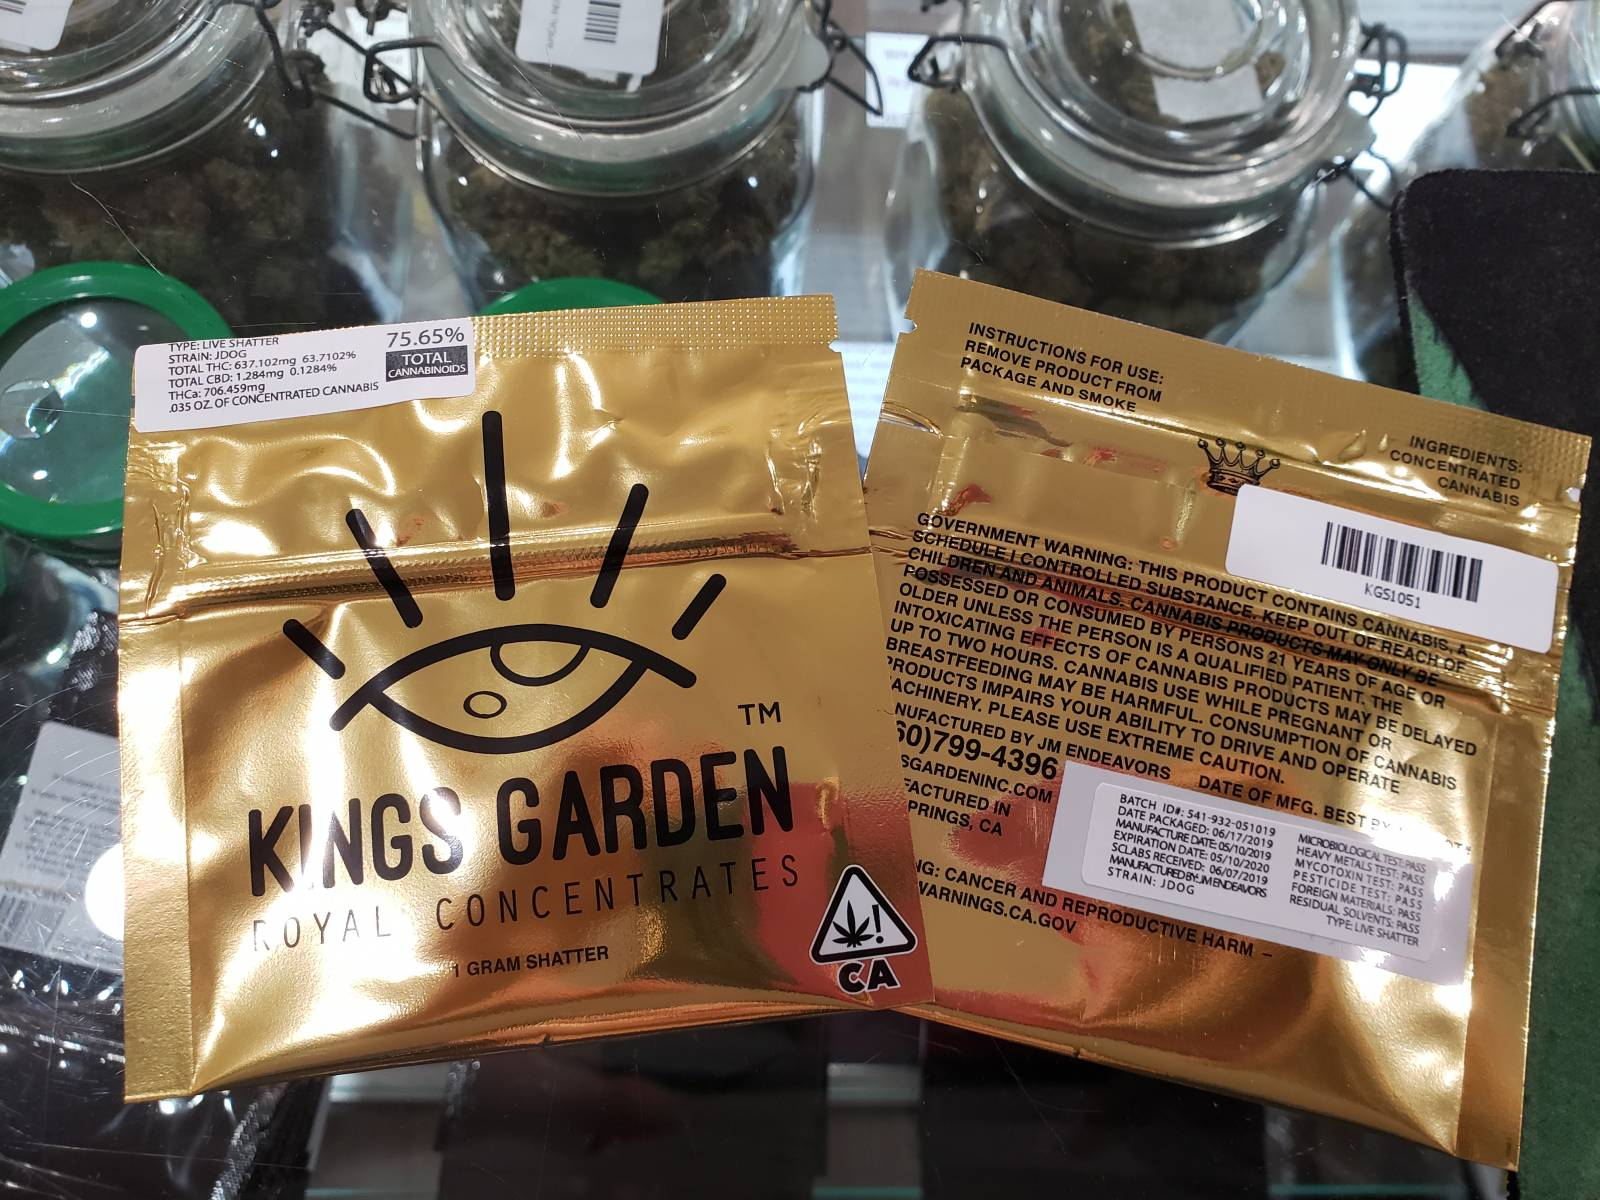 Kings Garden jdog live resin shatter 1 gram